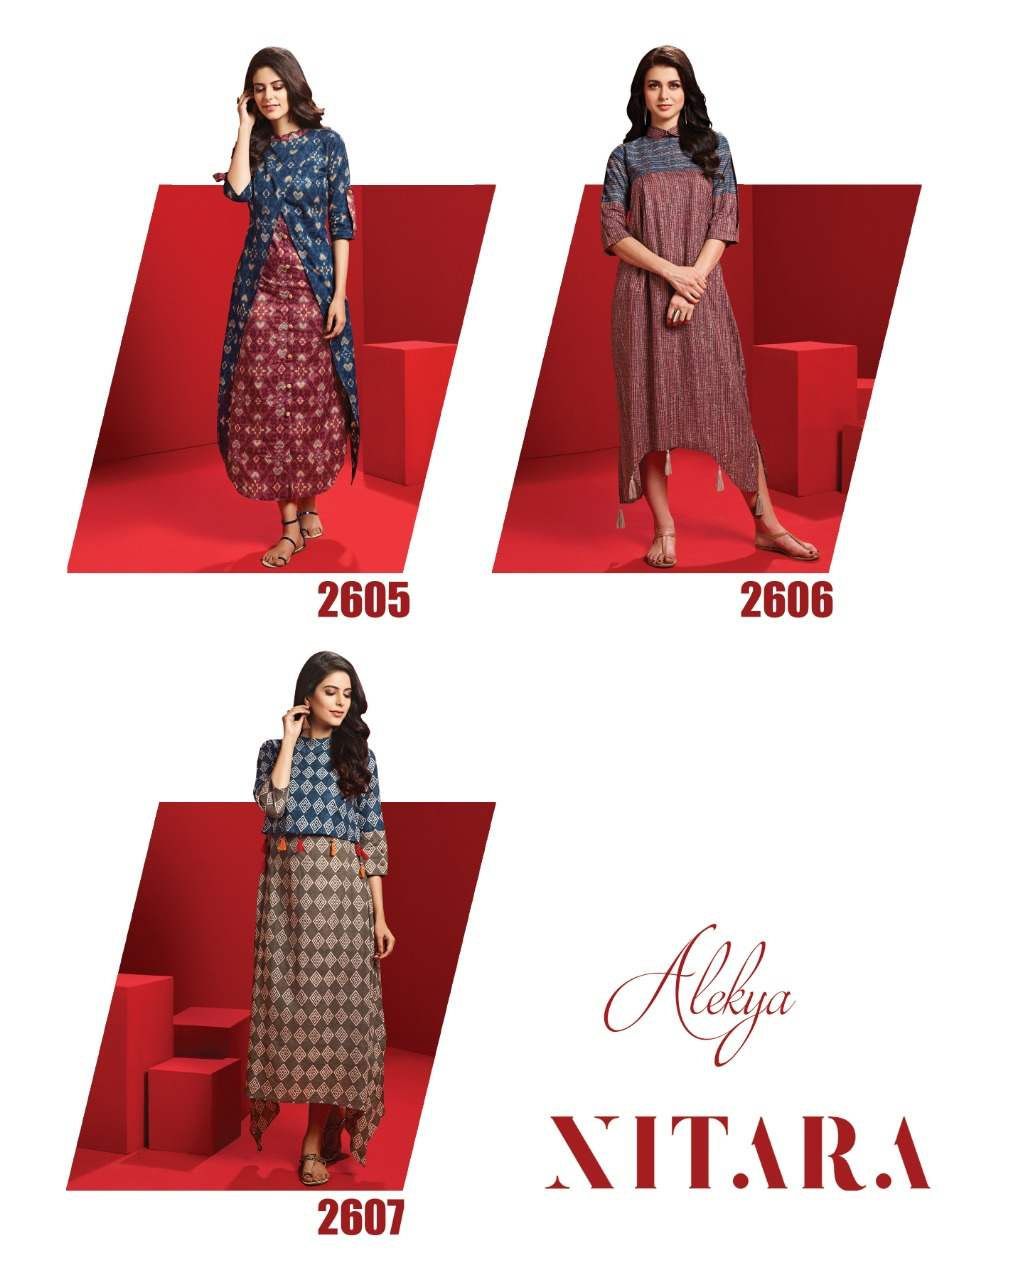 Nitara Alekhya collection 7